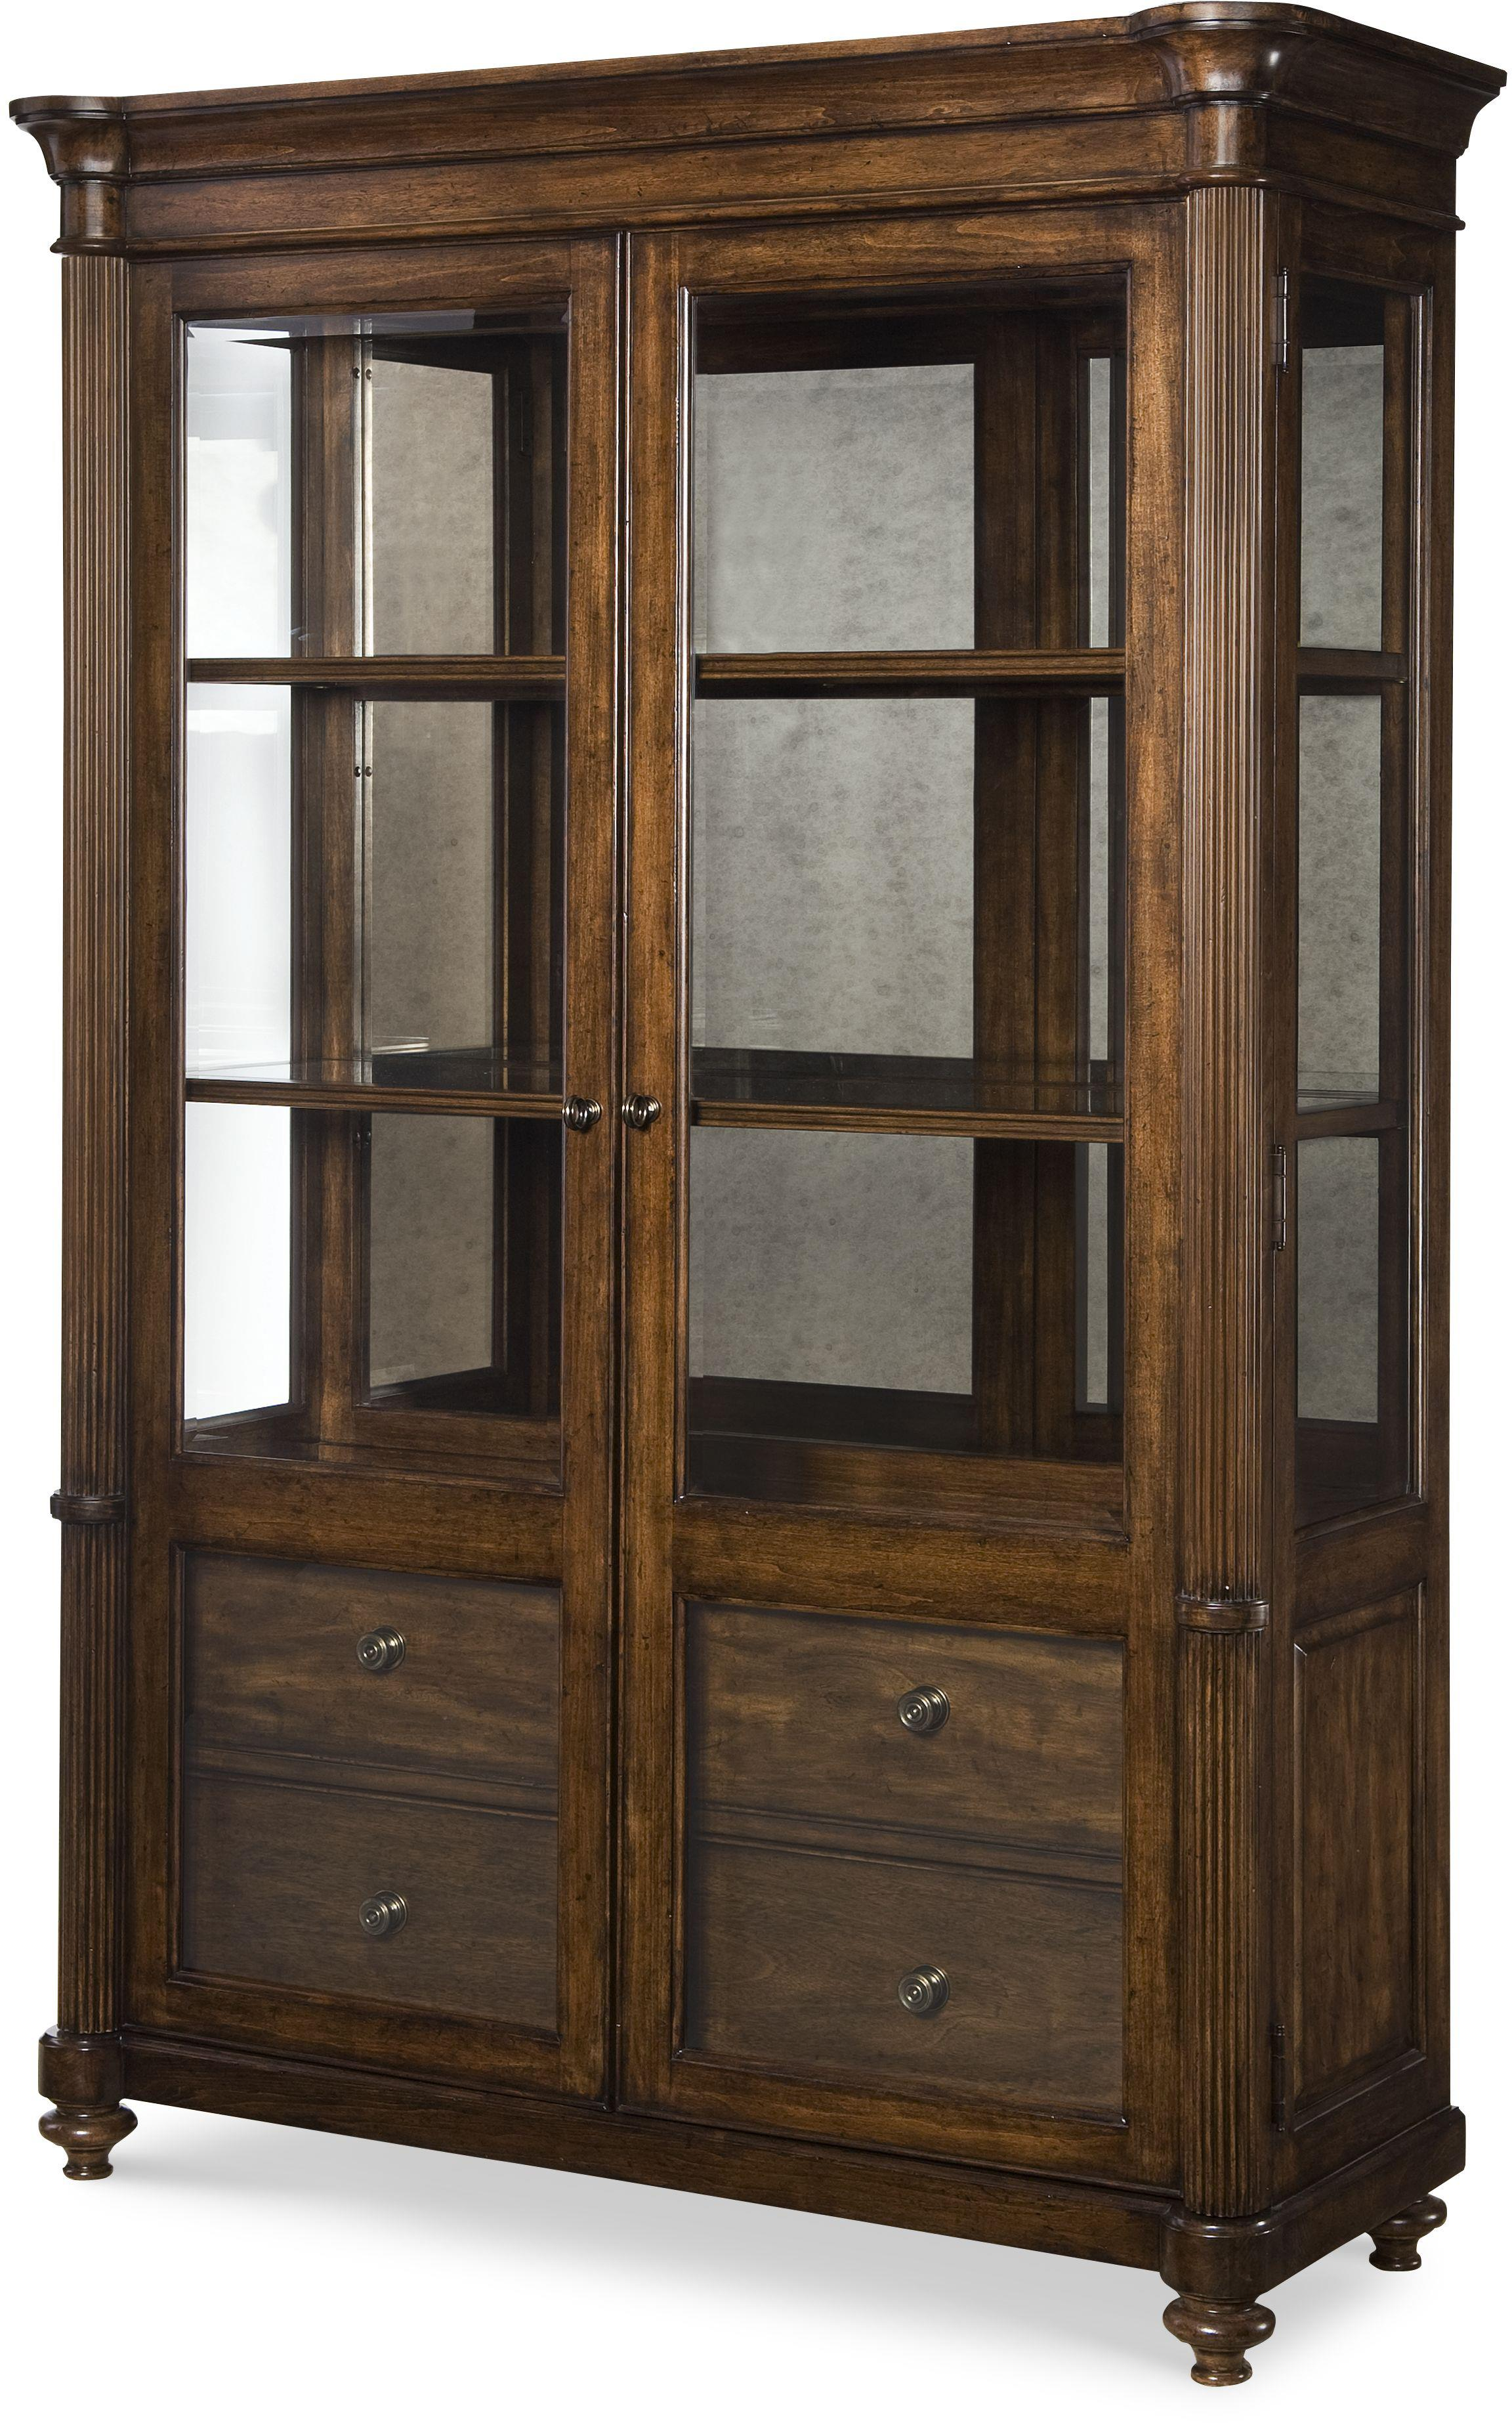 Legacy Classic Barrington Farm Display Cabinet - Item Number: 5200-174